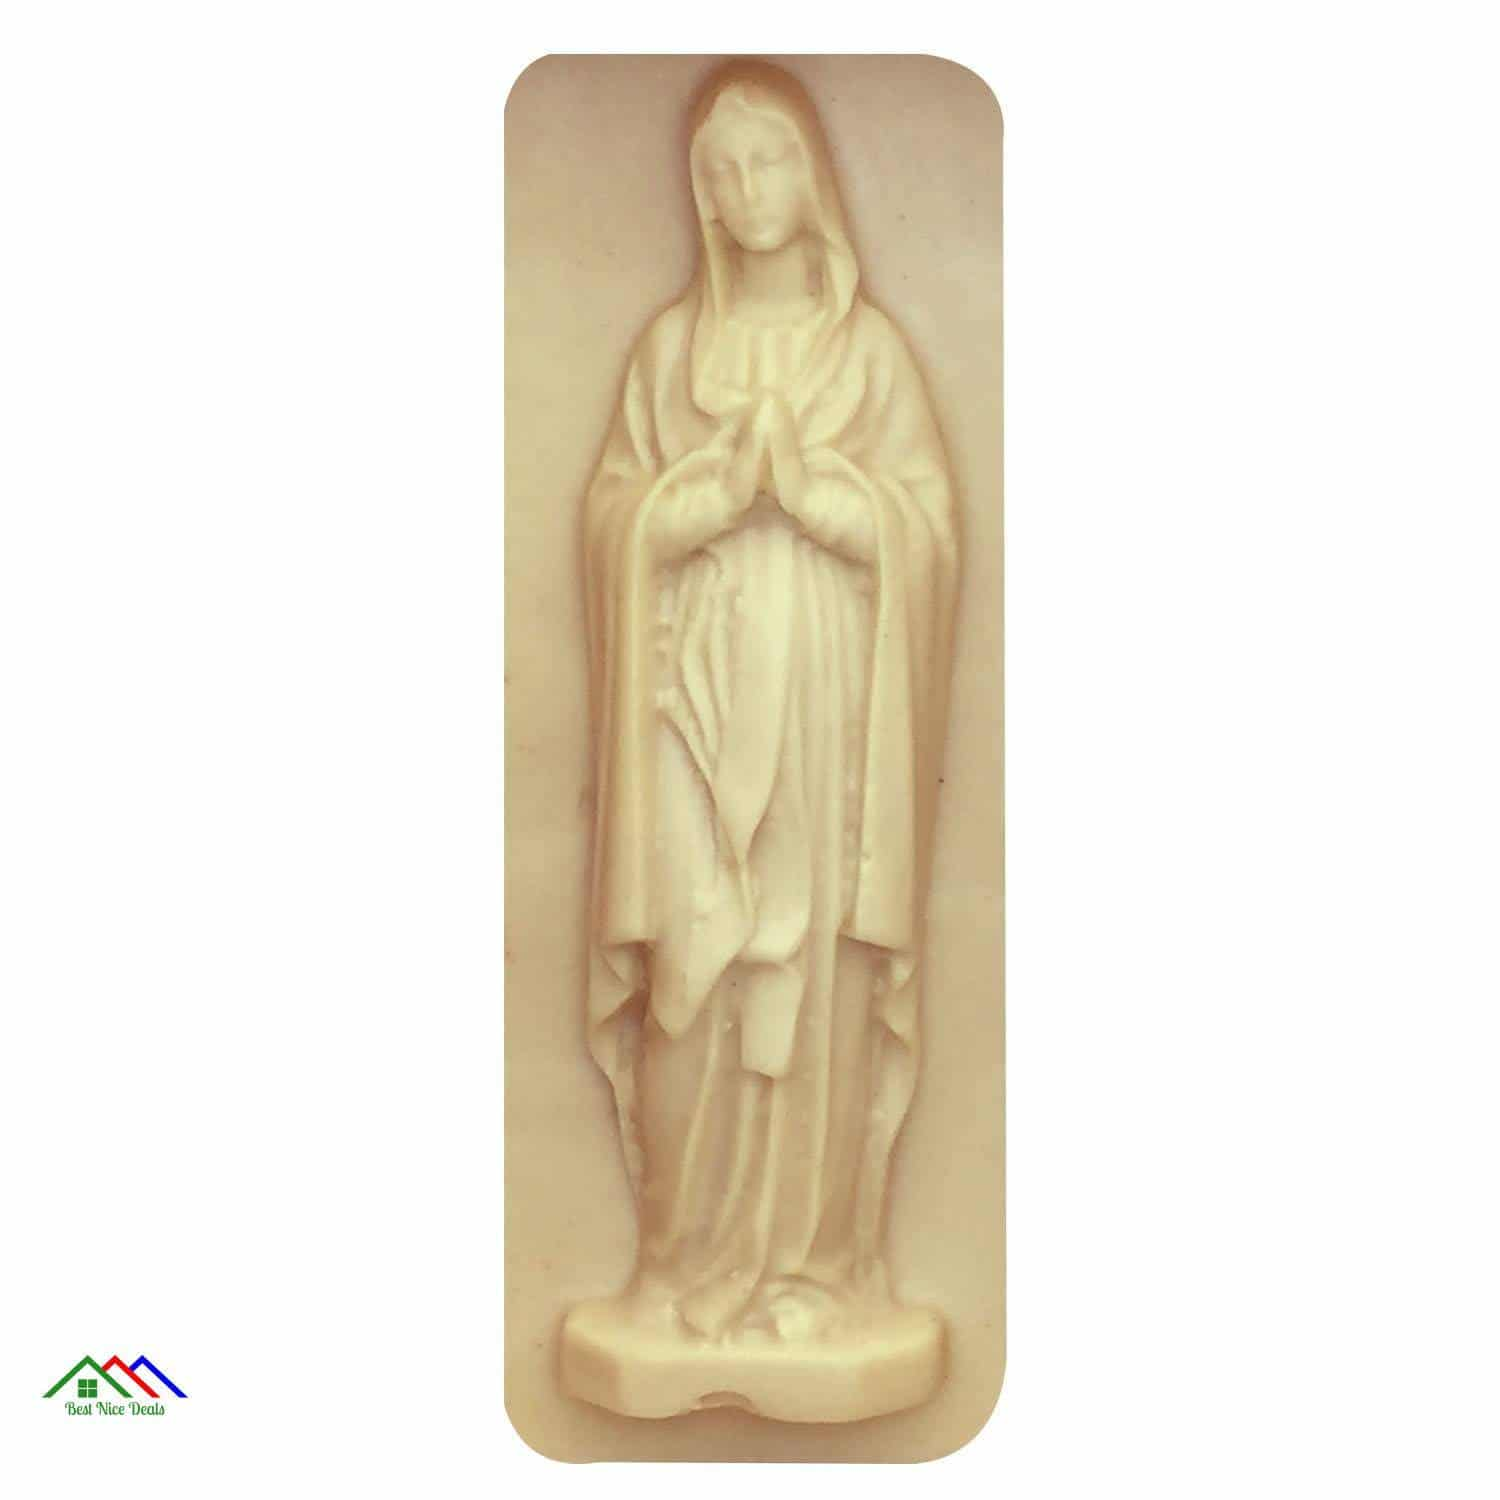 3D Virgin Mary Silicone Mold Top Selling Products Kitchen Silicone Molds